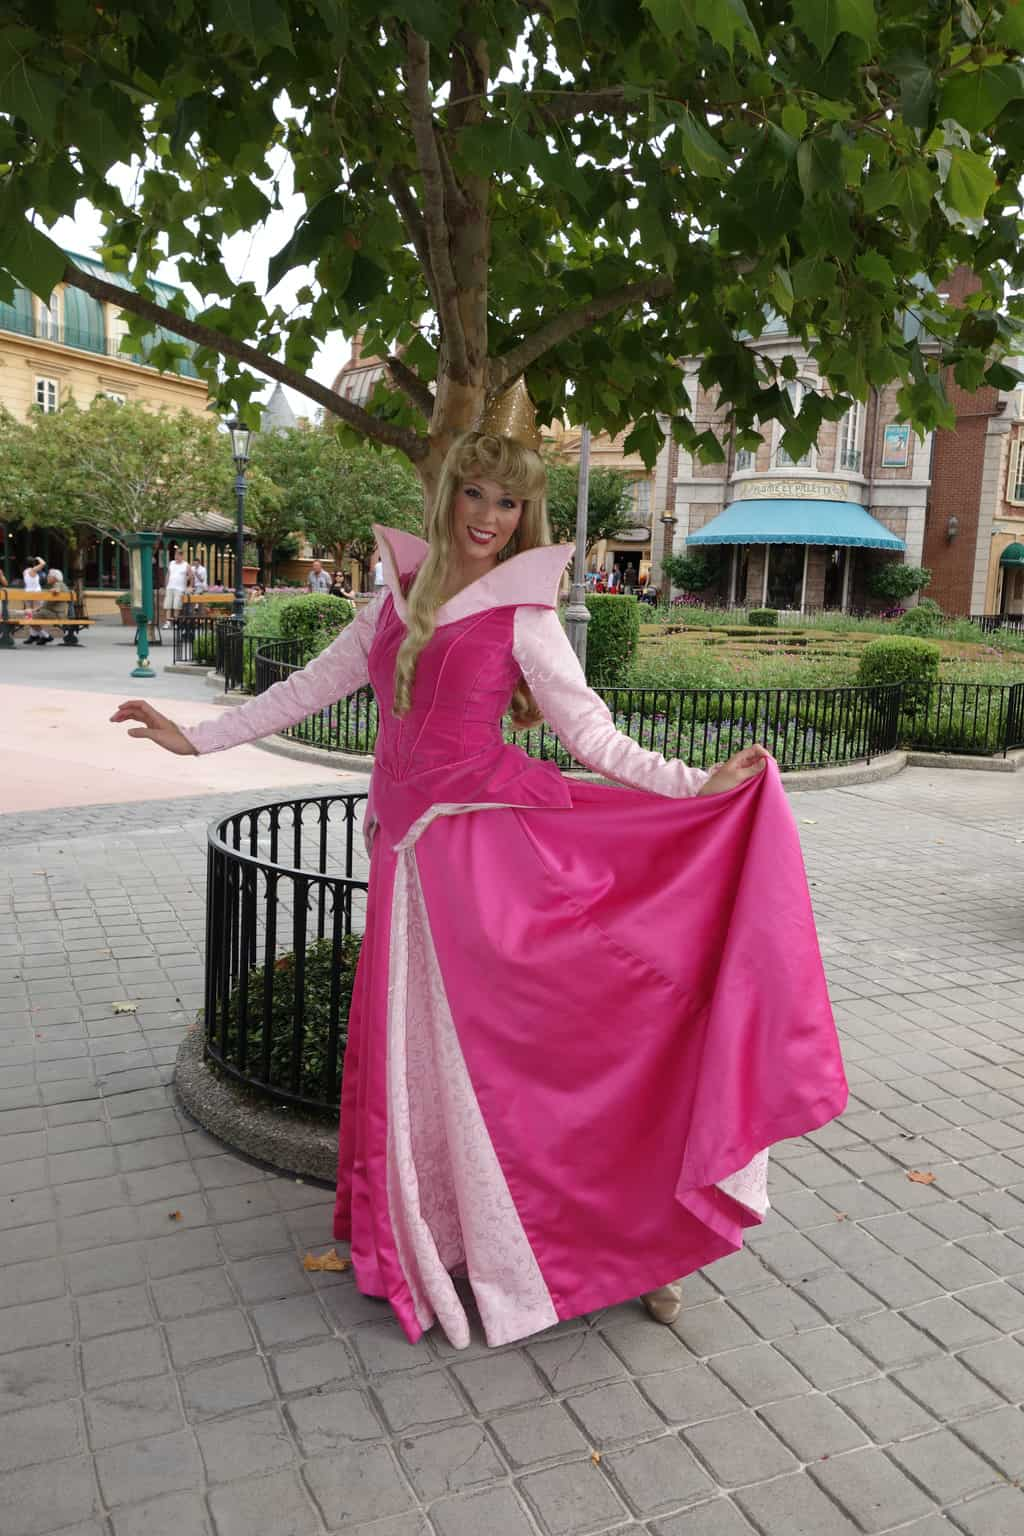 Aurora Sleeping Beauty at France in Epcot